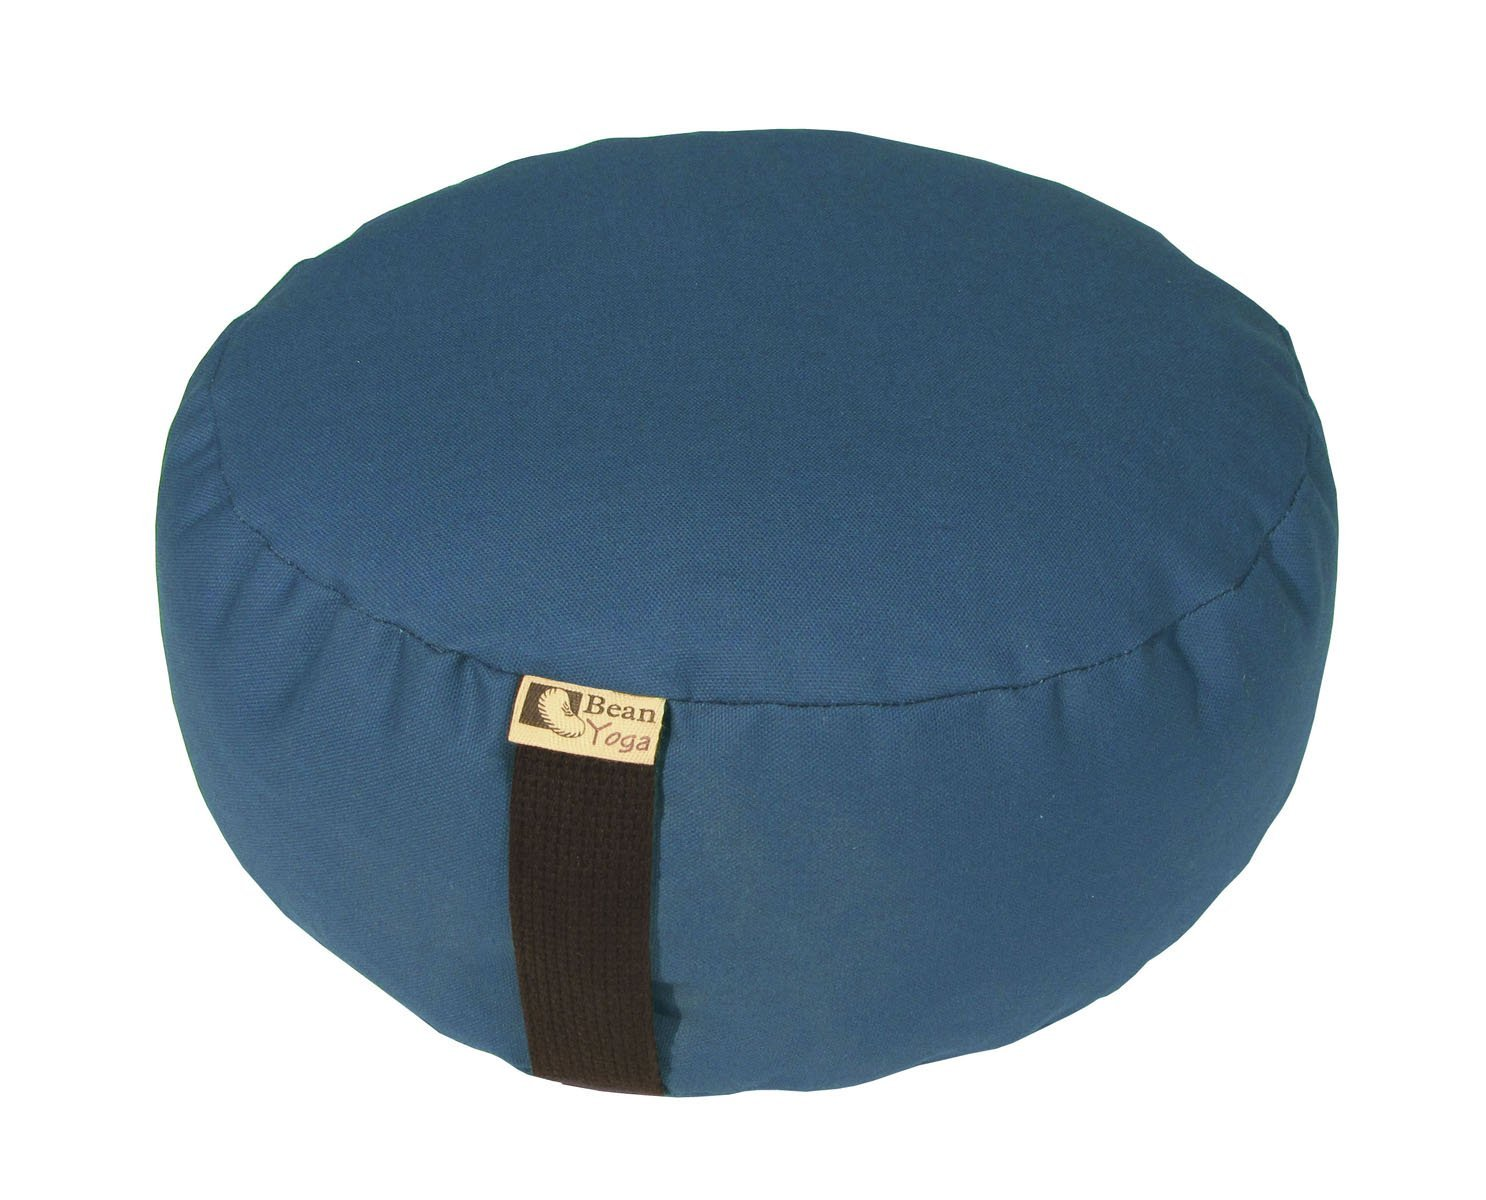 yoga and meditation cushion